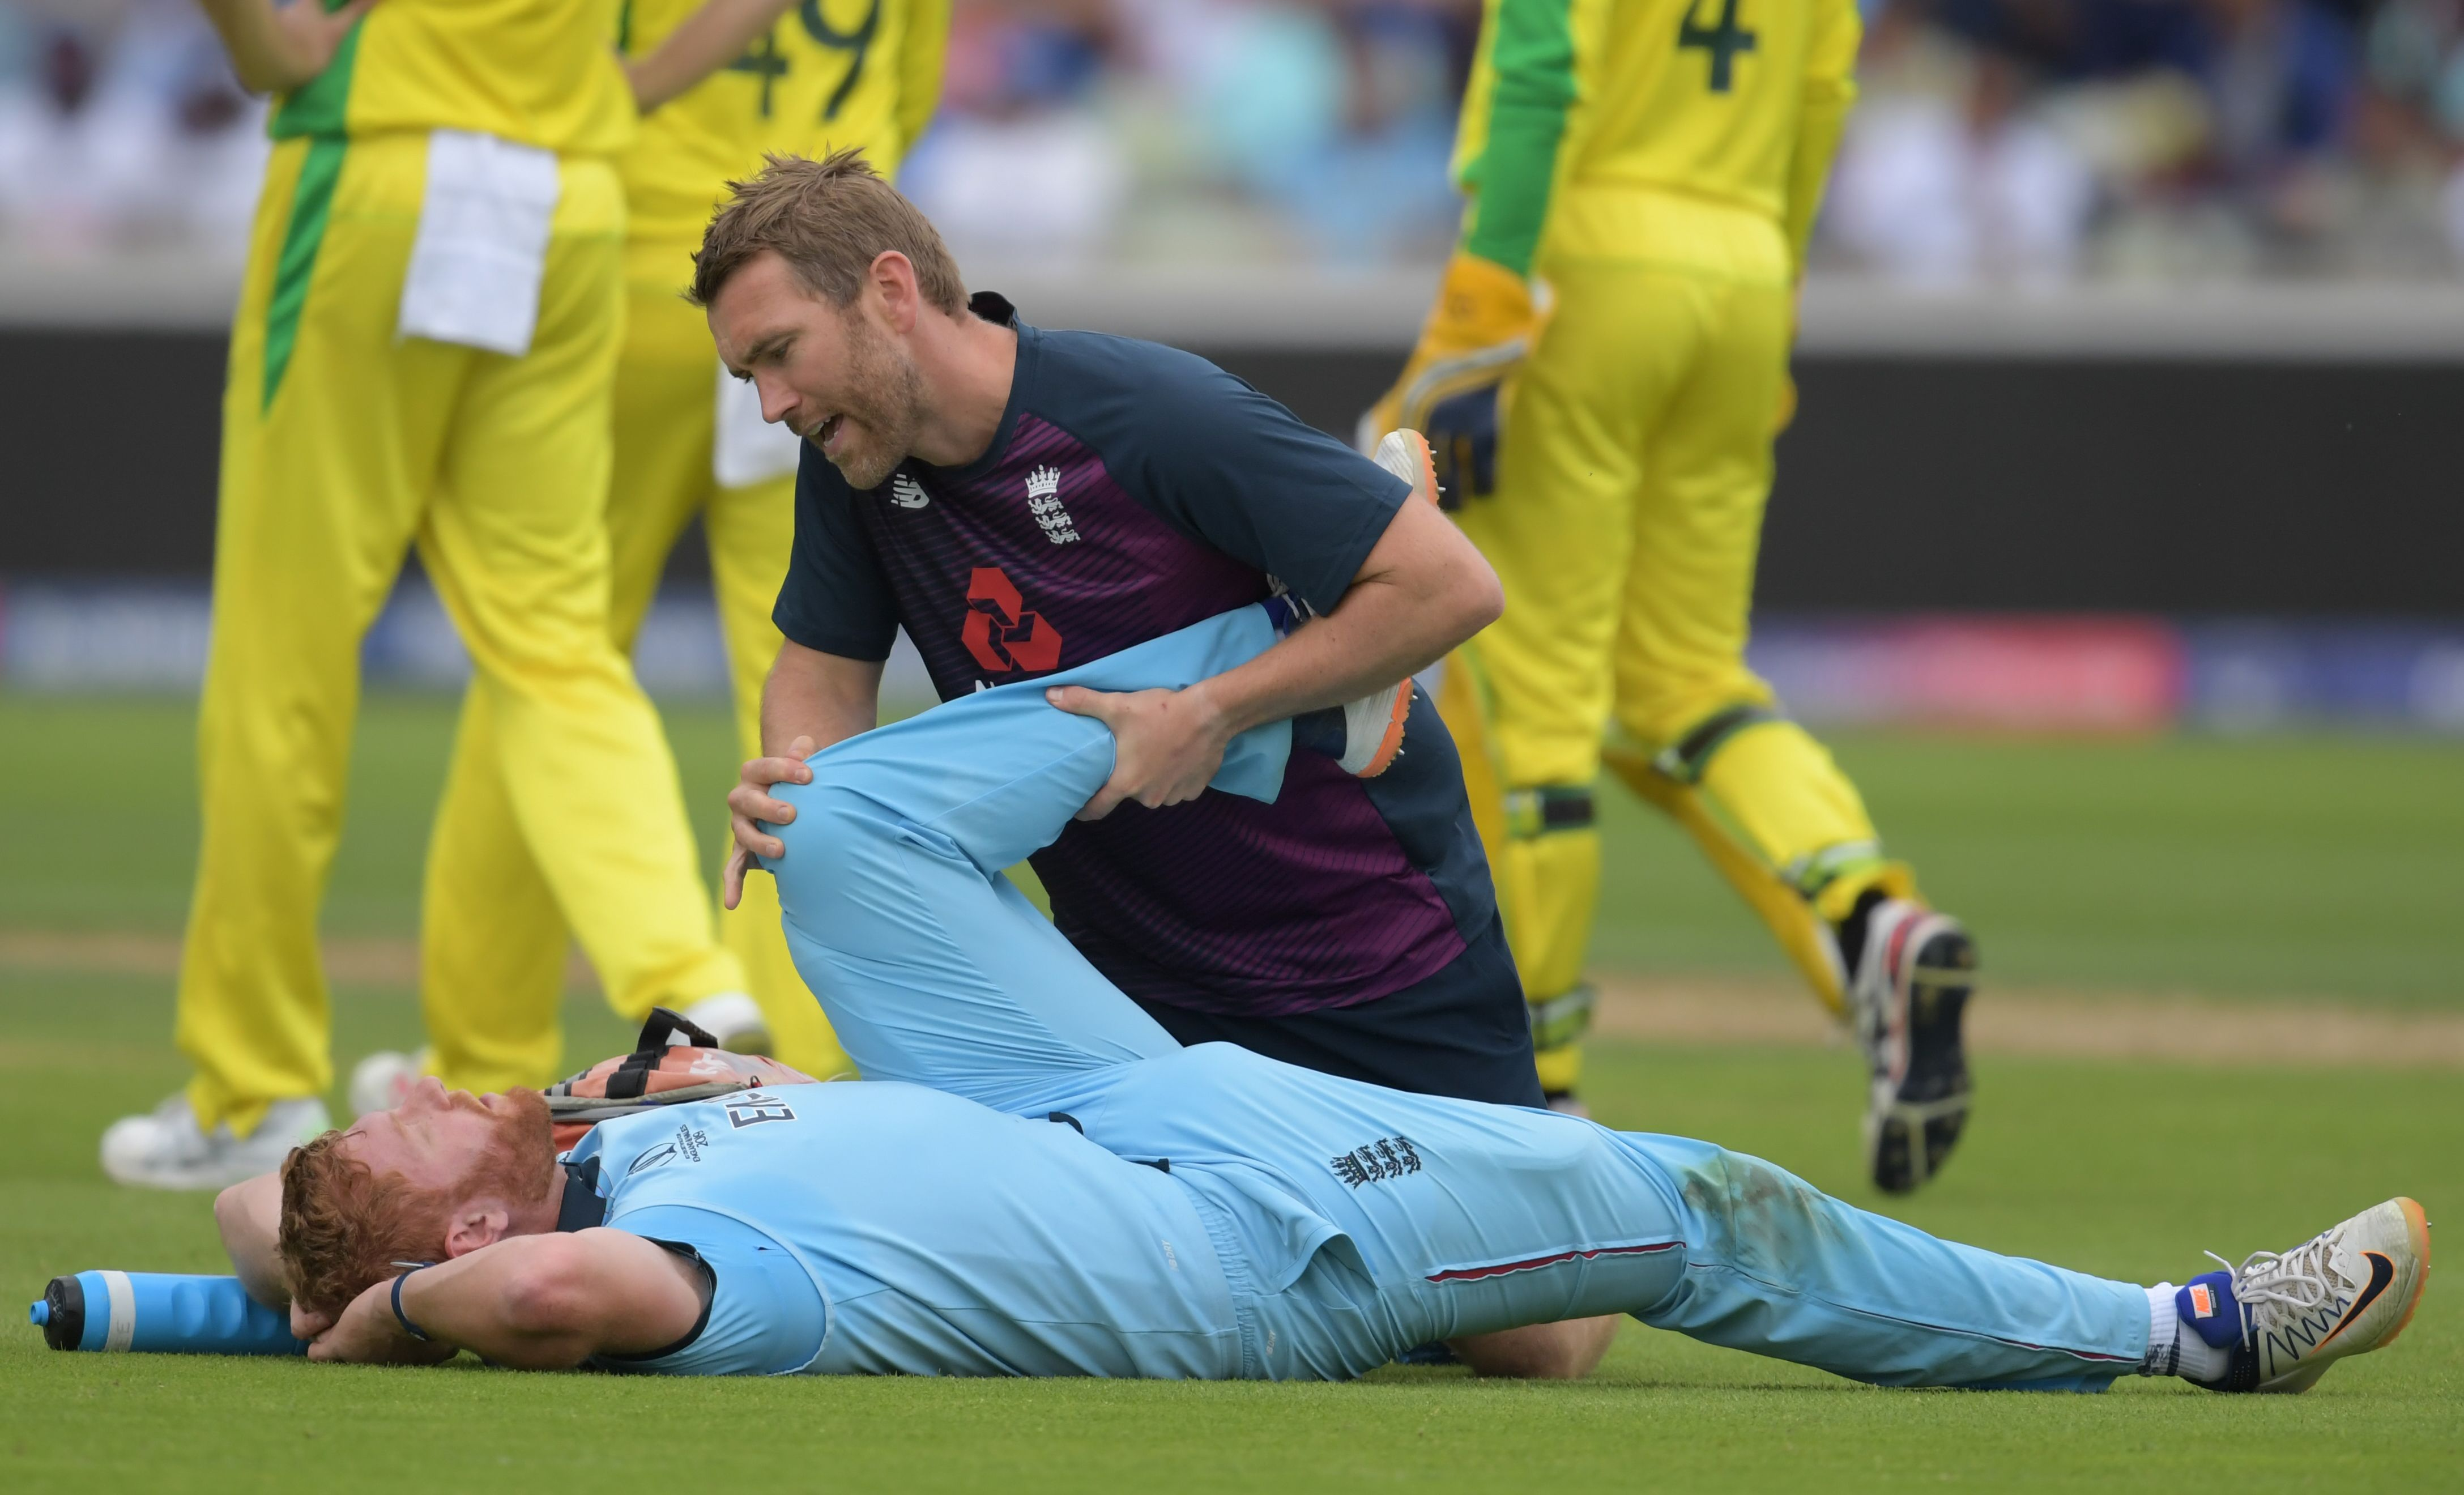 onny Bairstow (R) looks on as he receives medical attention. Photo: AFP